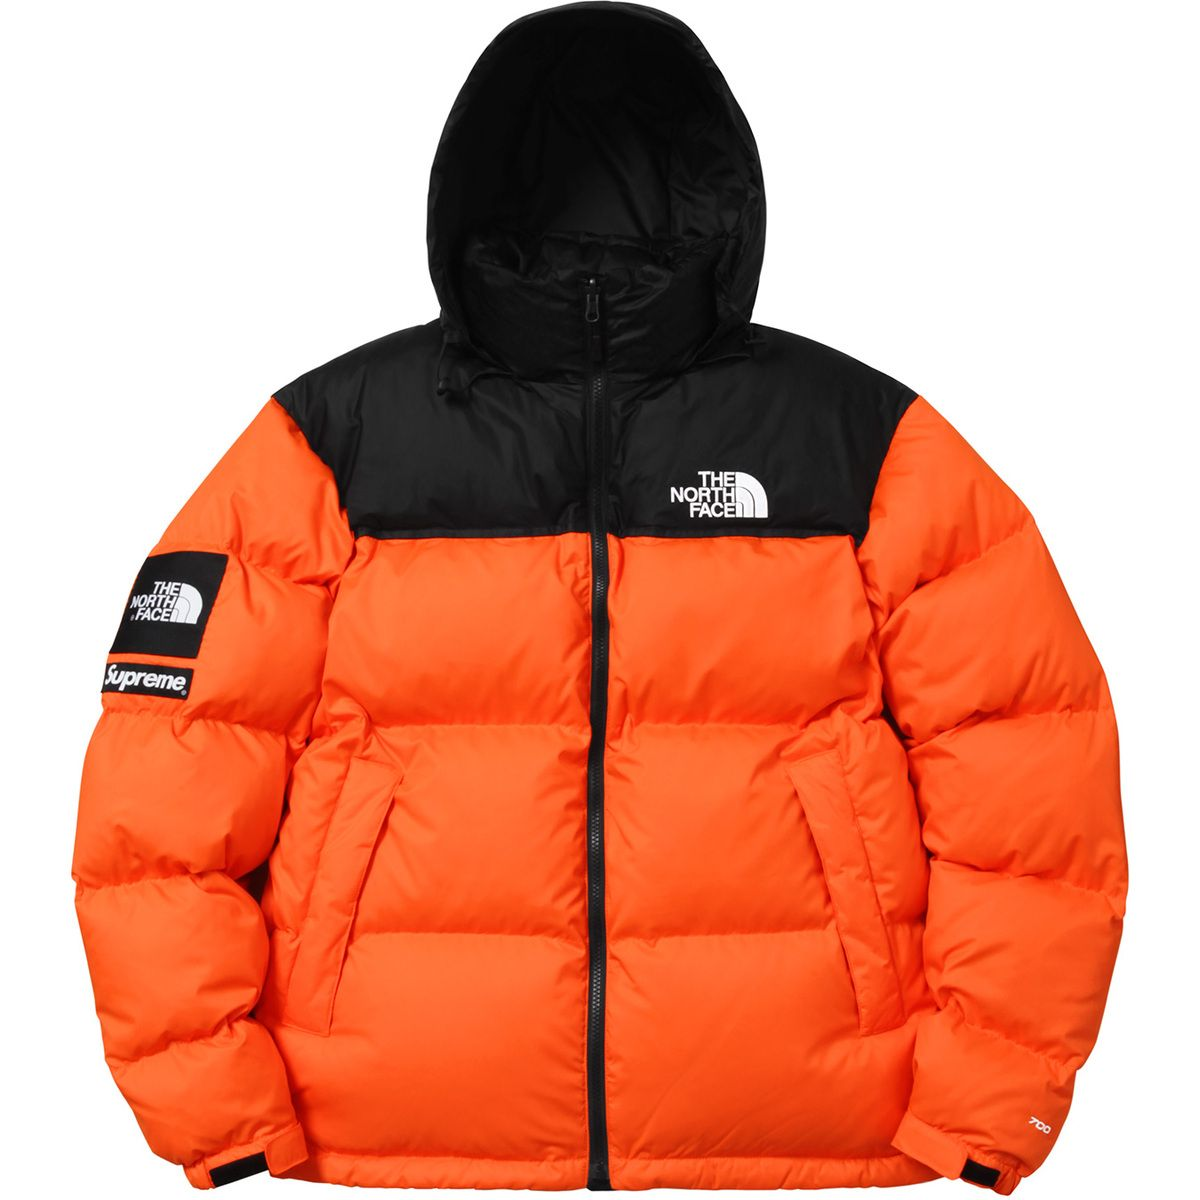 90373afea5c5 Supreme Orange North Face Jacket